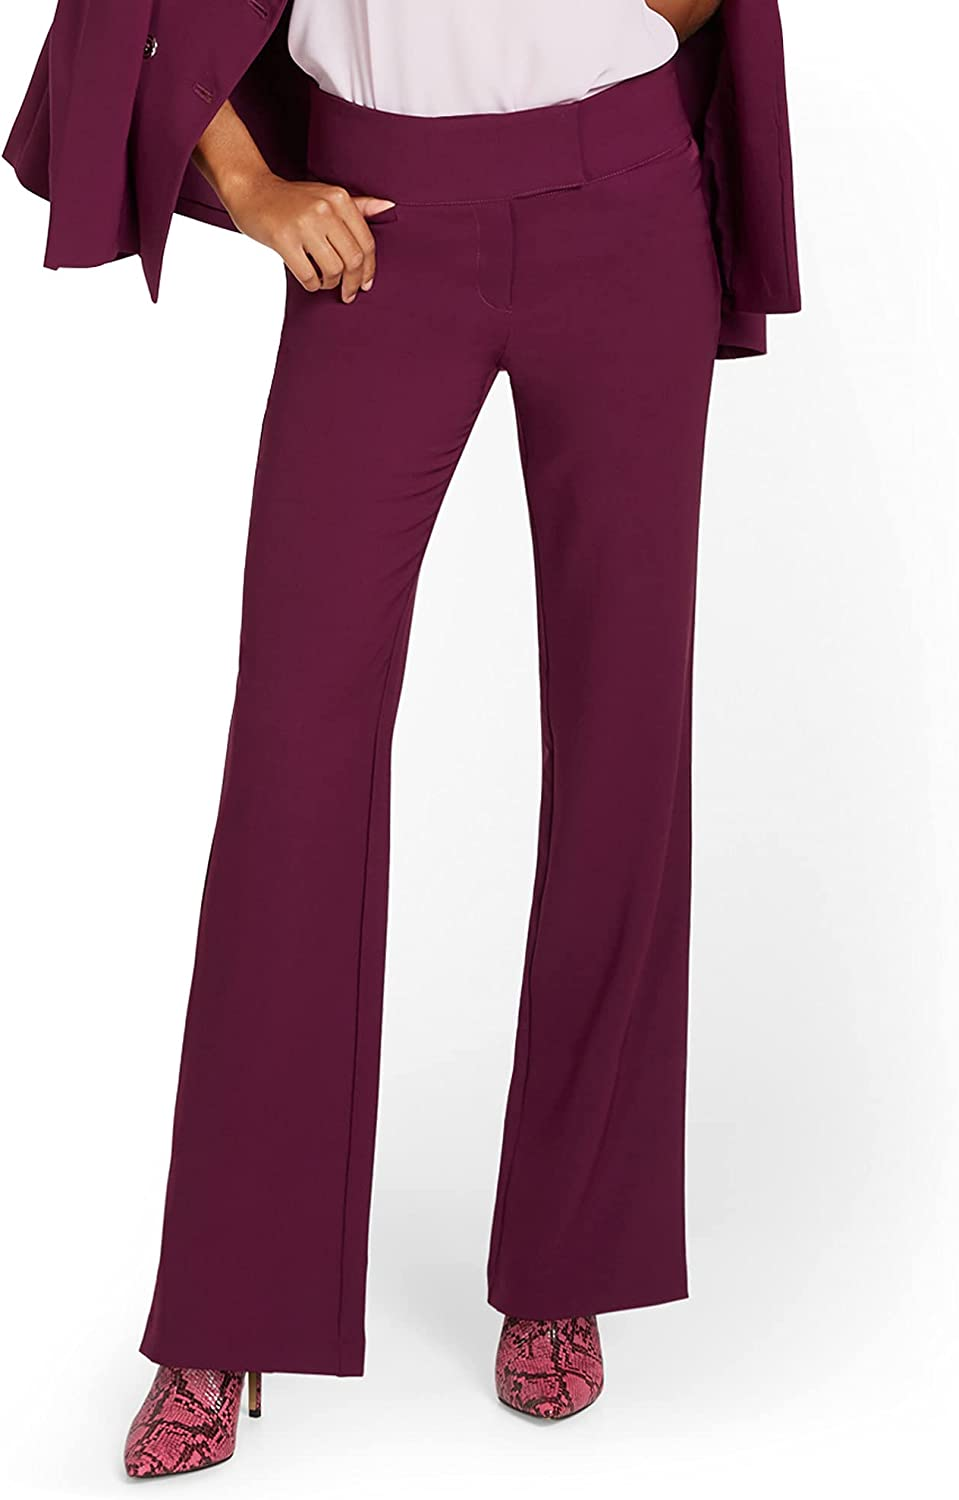 New York & Co. Women's High-Waisted Wide-Leg Pant - Premium Stretch